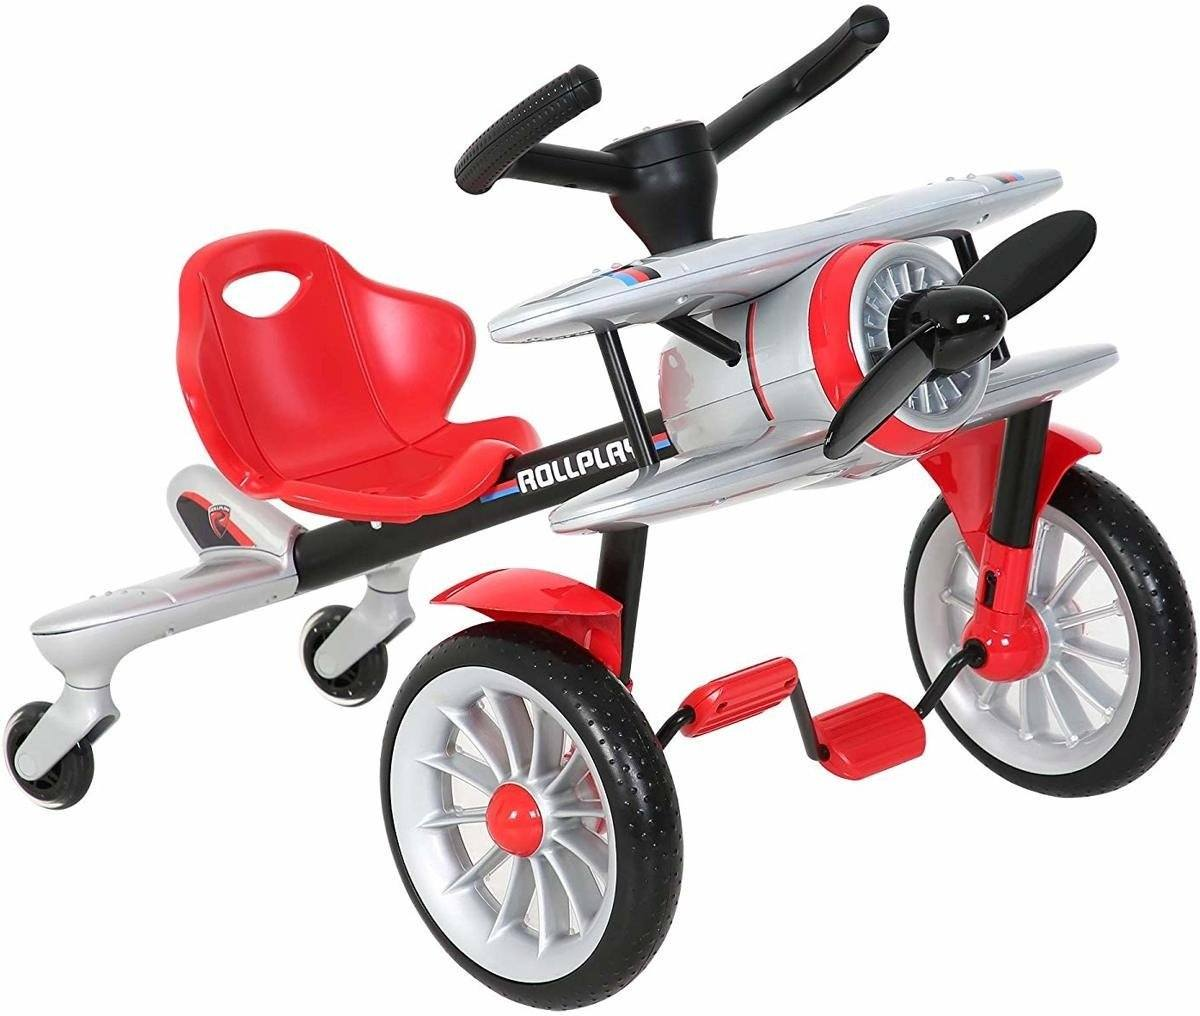 ROLLPLAY Germany Planado Pedal-Powered Go Kart - TOYBOX Toy Shop